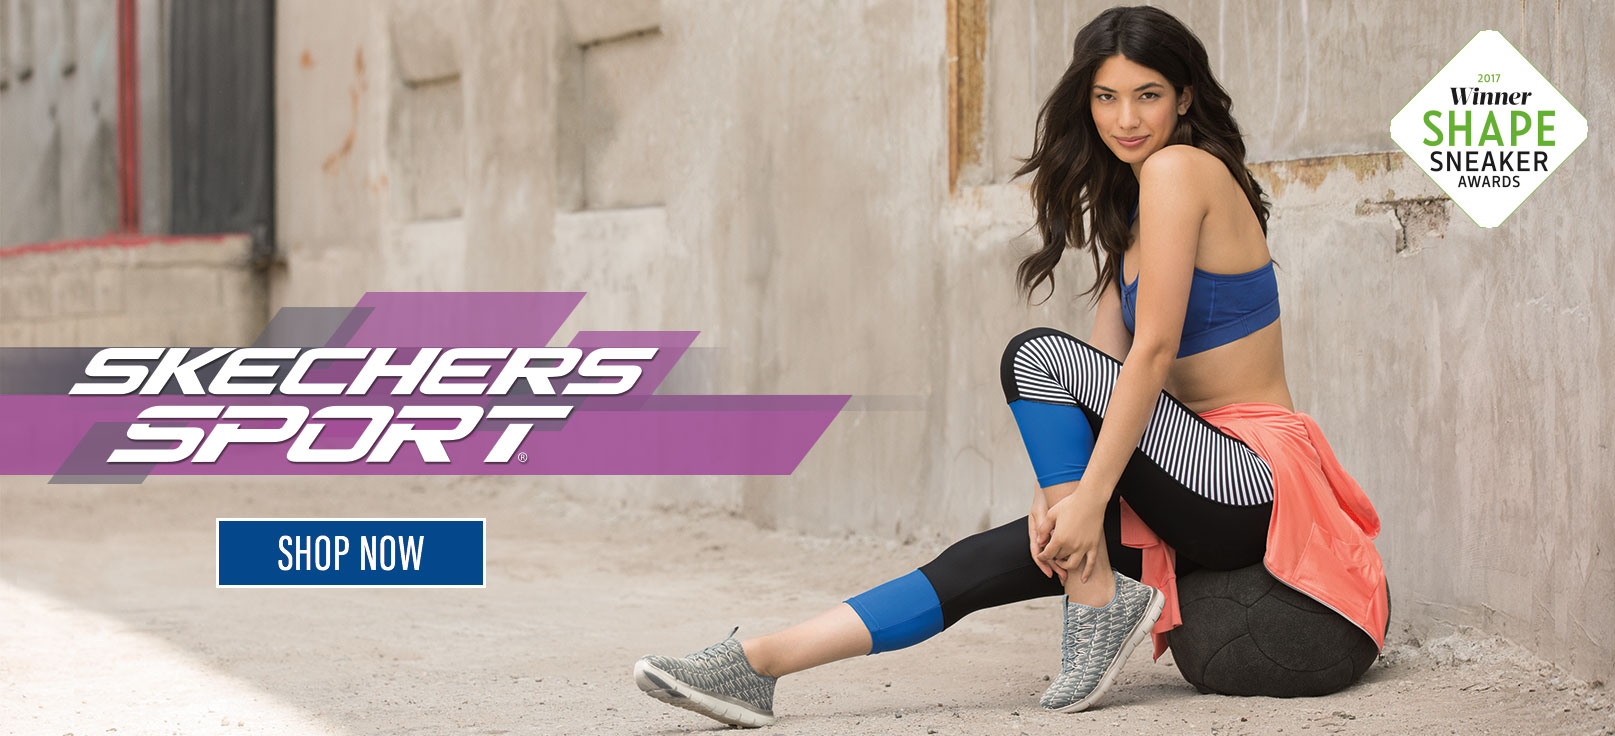 Shop for Women's Sport Shoes including Skechers Sport with Air Cooled Memory Foam as worn by Kelly Brook.  Largest selection online